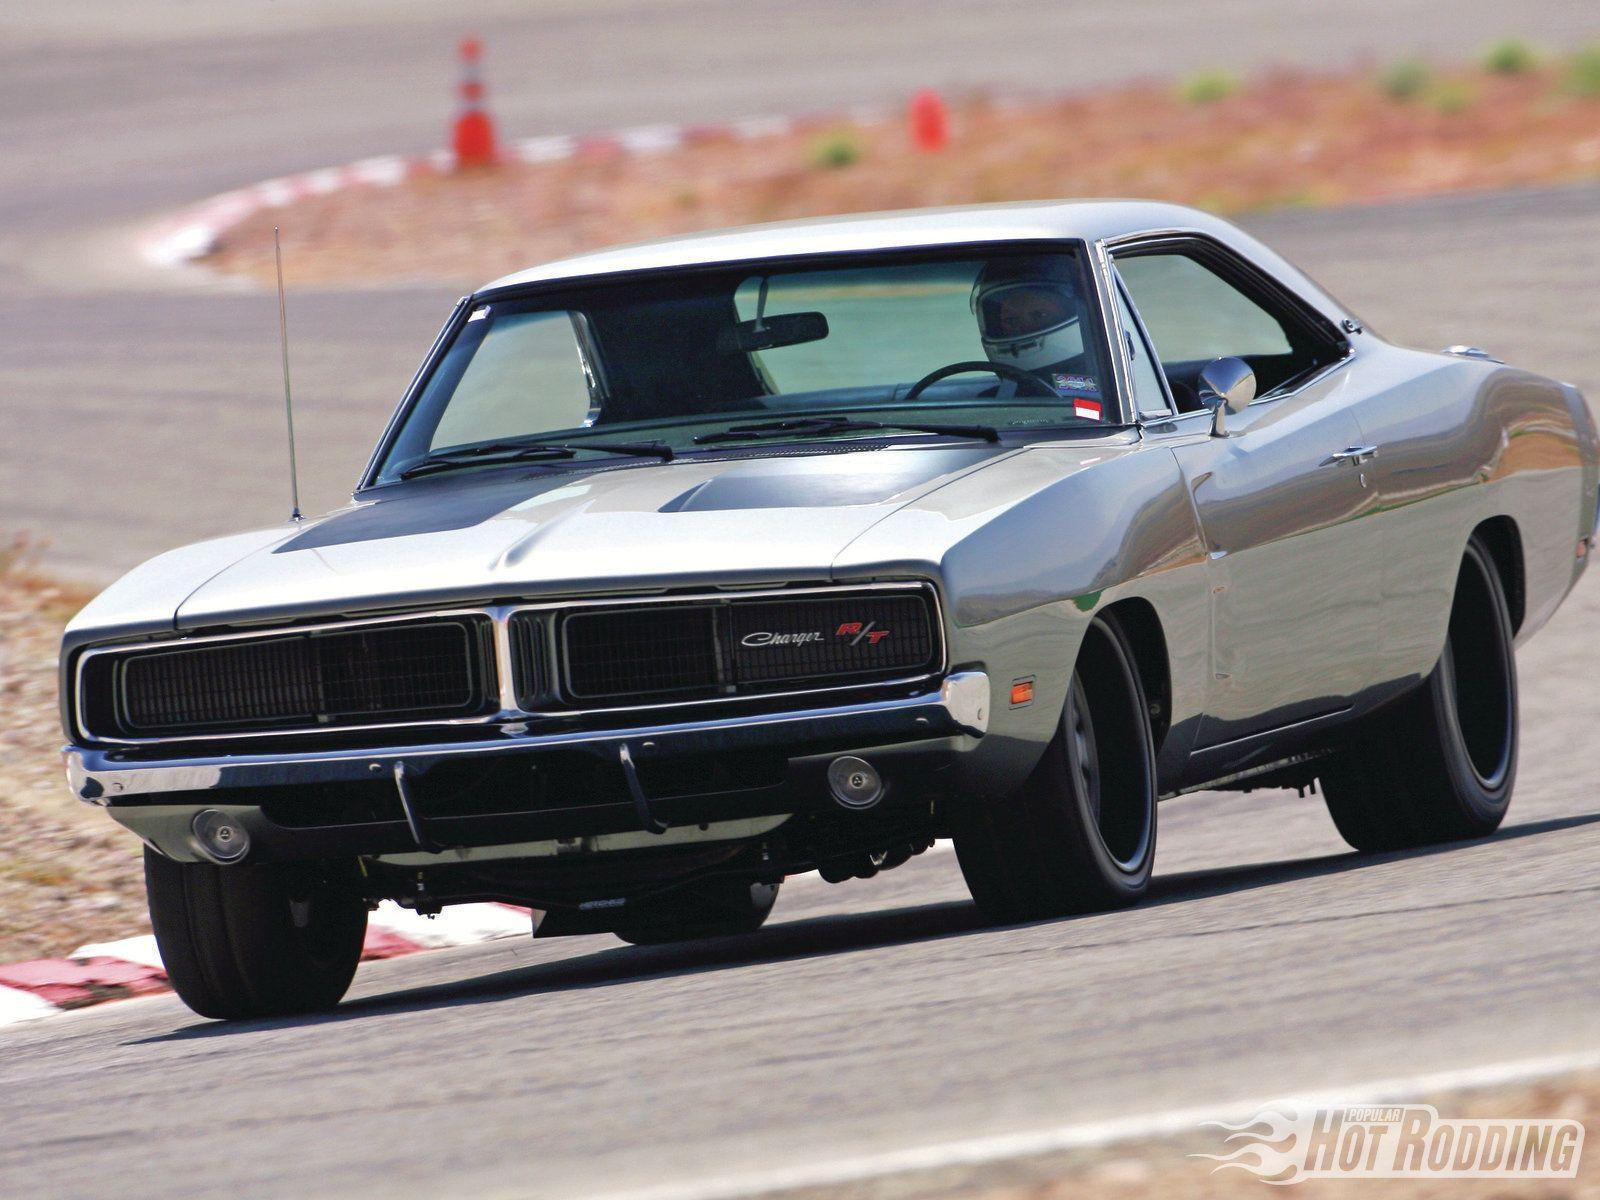 1969 Dodge Charger....fatty or skinnies for treads?